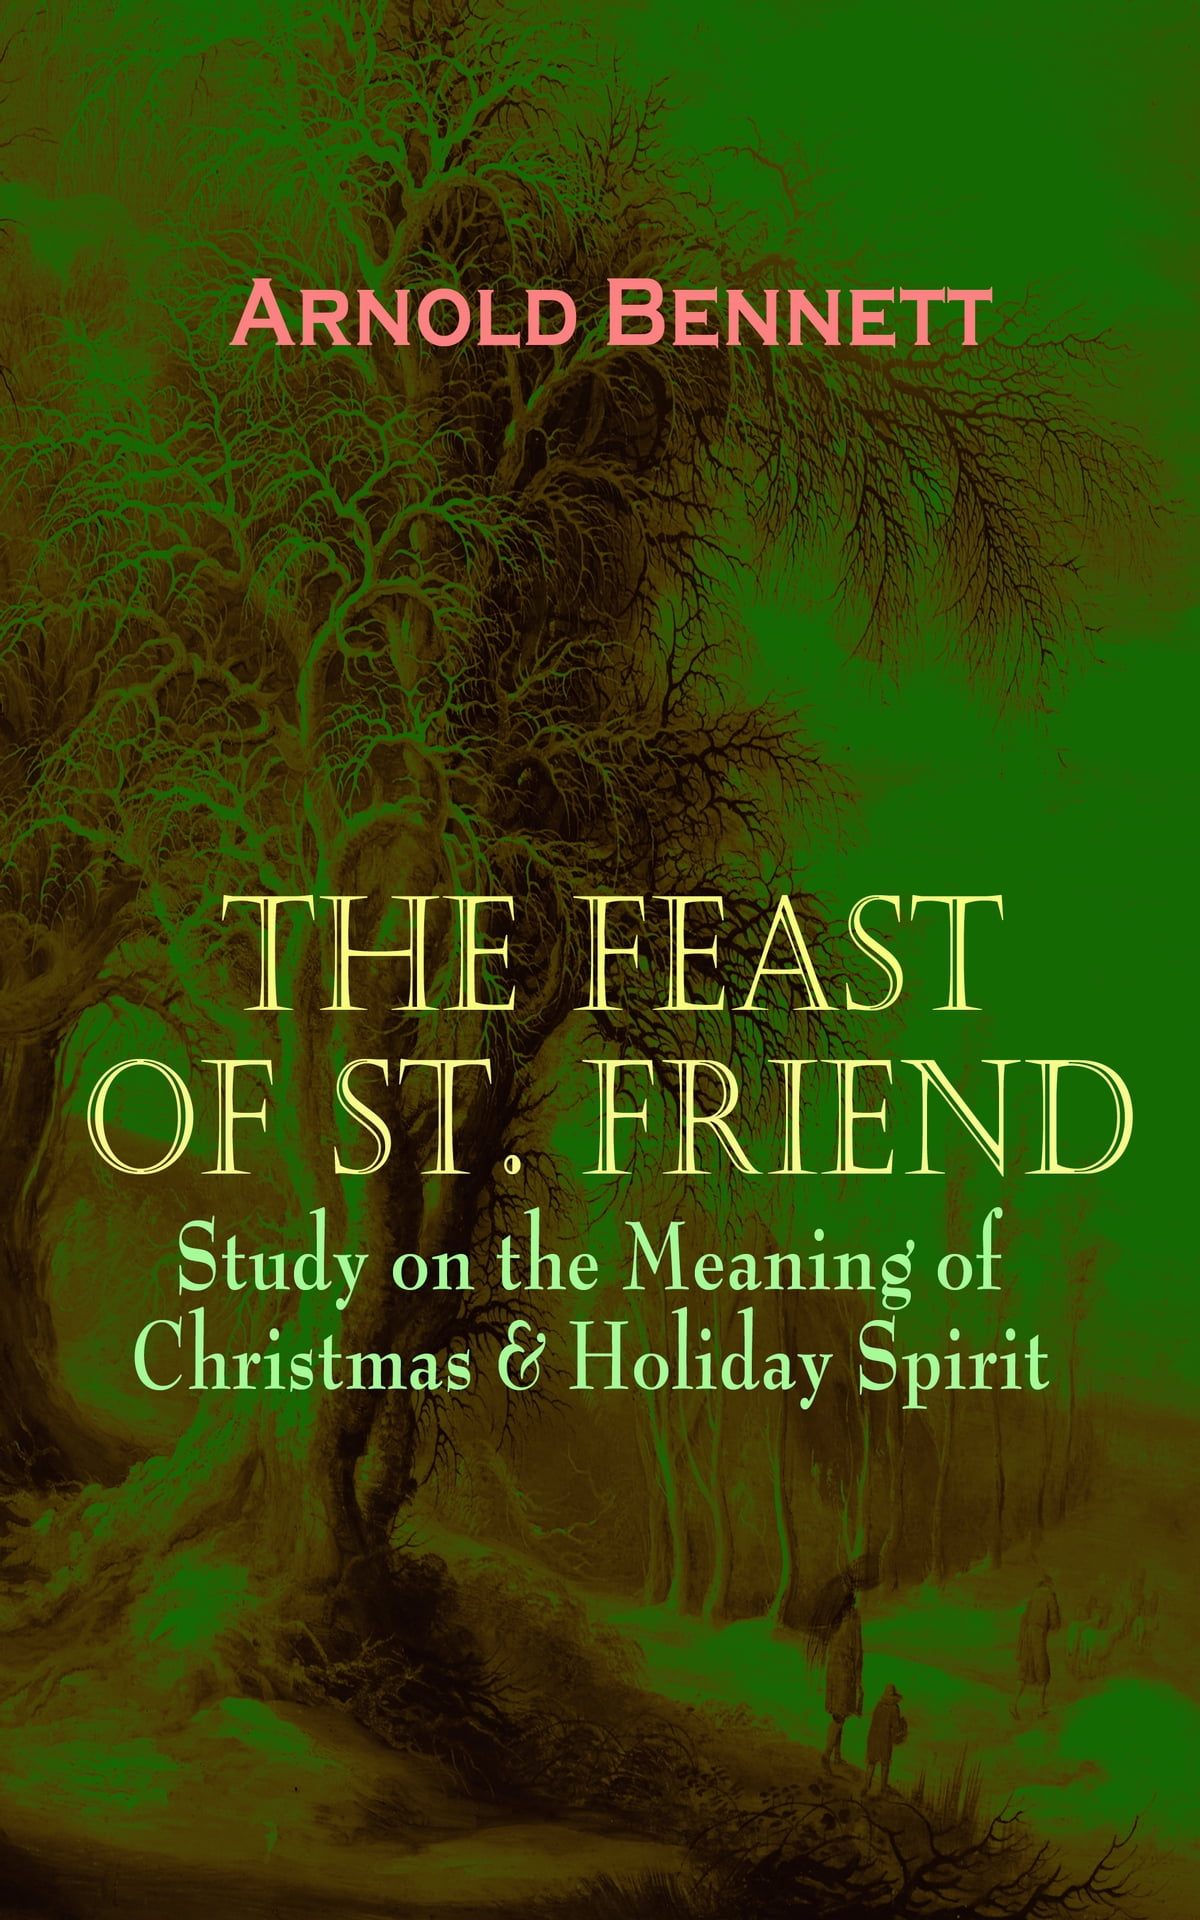 Christmas Meaning.The Feast Of St Friend Study On The Meaning Of Christmas Holiday Spirit Ebook By Arnold Bennett Rakuten Kobo